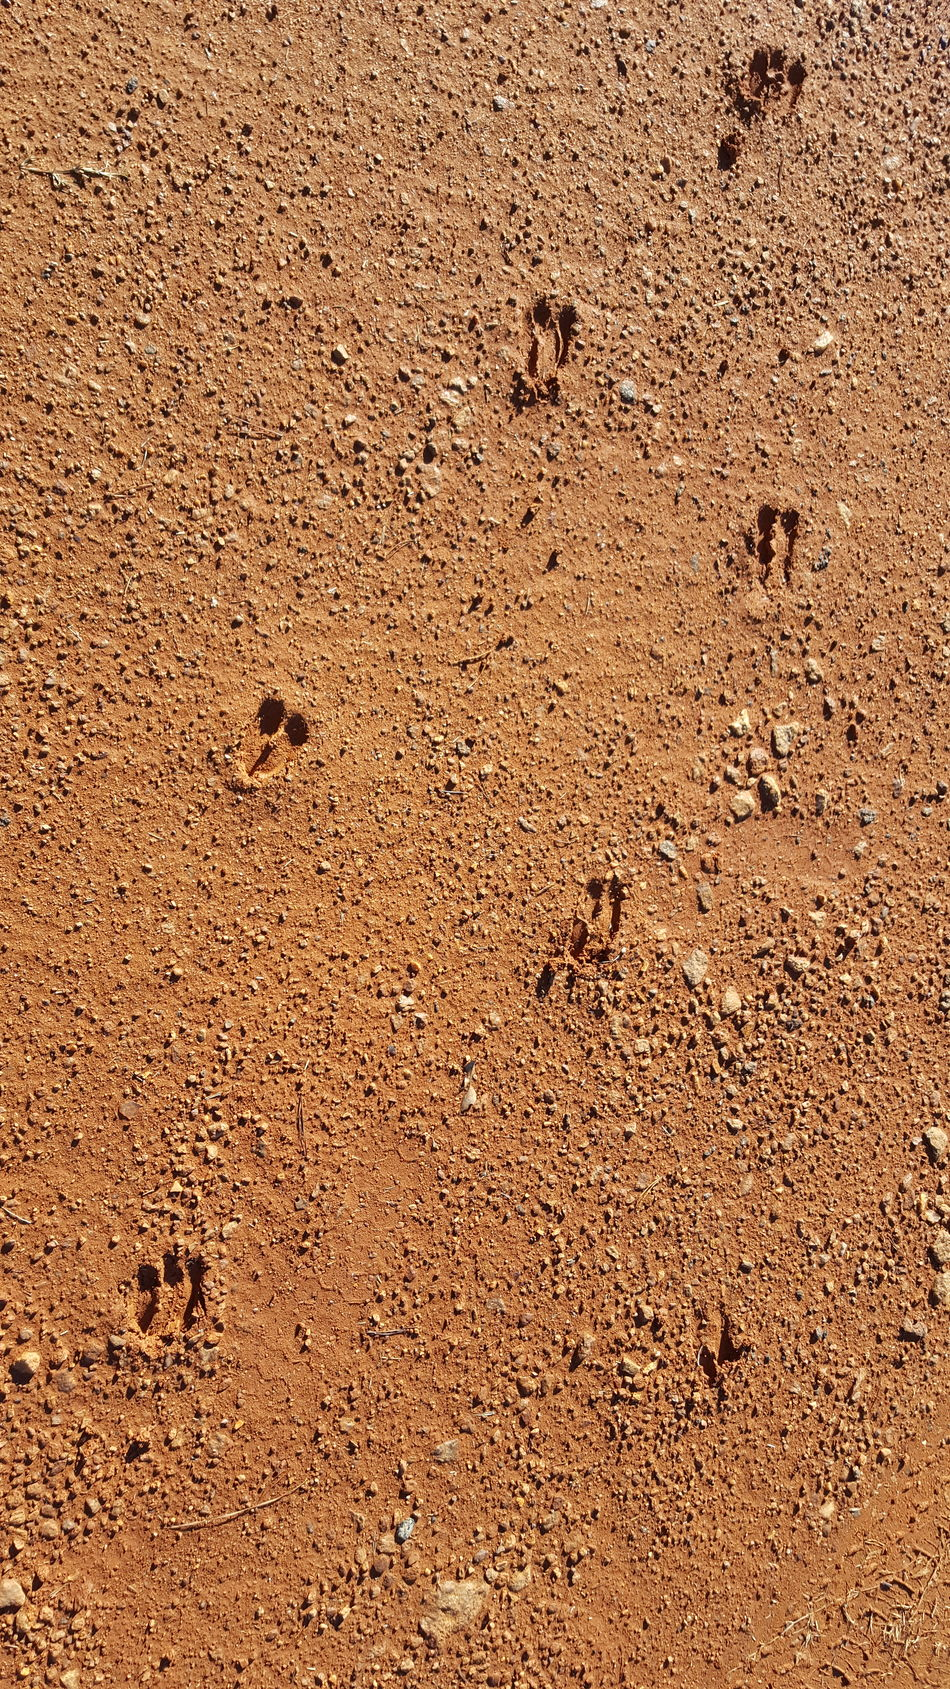 Deer tracks in the dirt Backgrounds Textured  Pattern Sand Abstract Full Frame No People Particle Close-up Outdoors Day Spartanburg, SC Love Where You Live Loving Life  Nature Deer Tracks Out For A Walk Wildlife